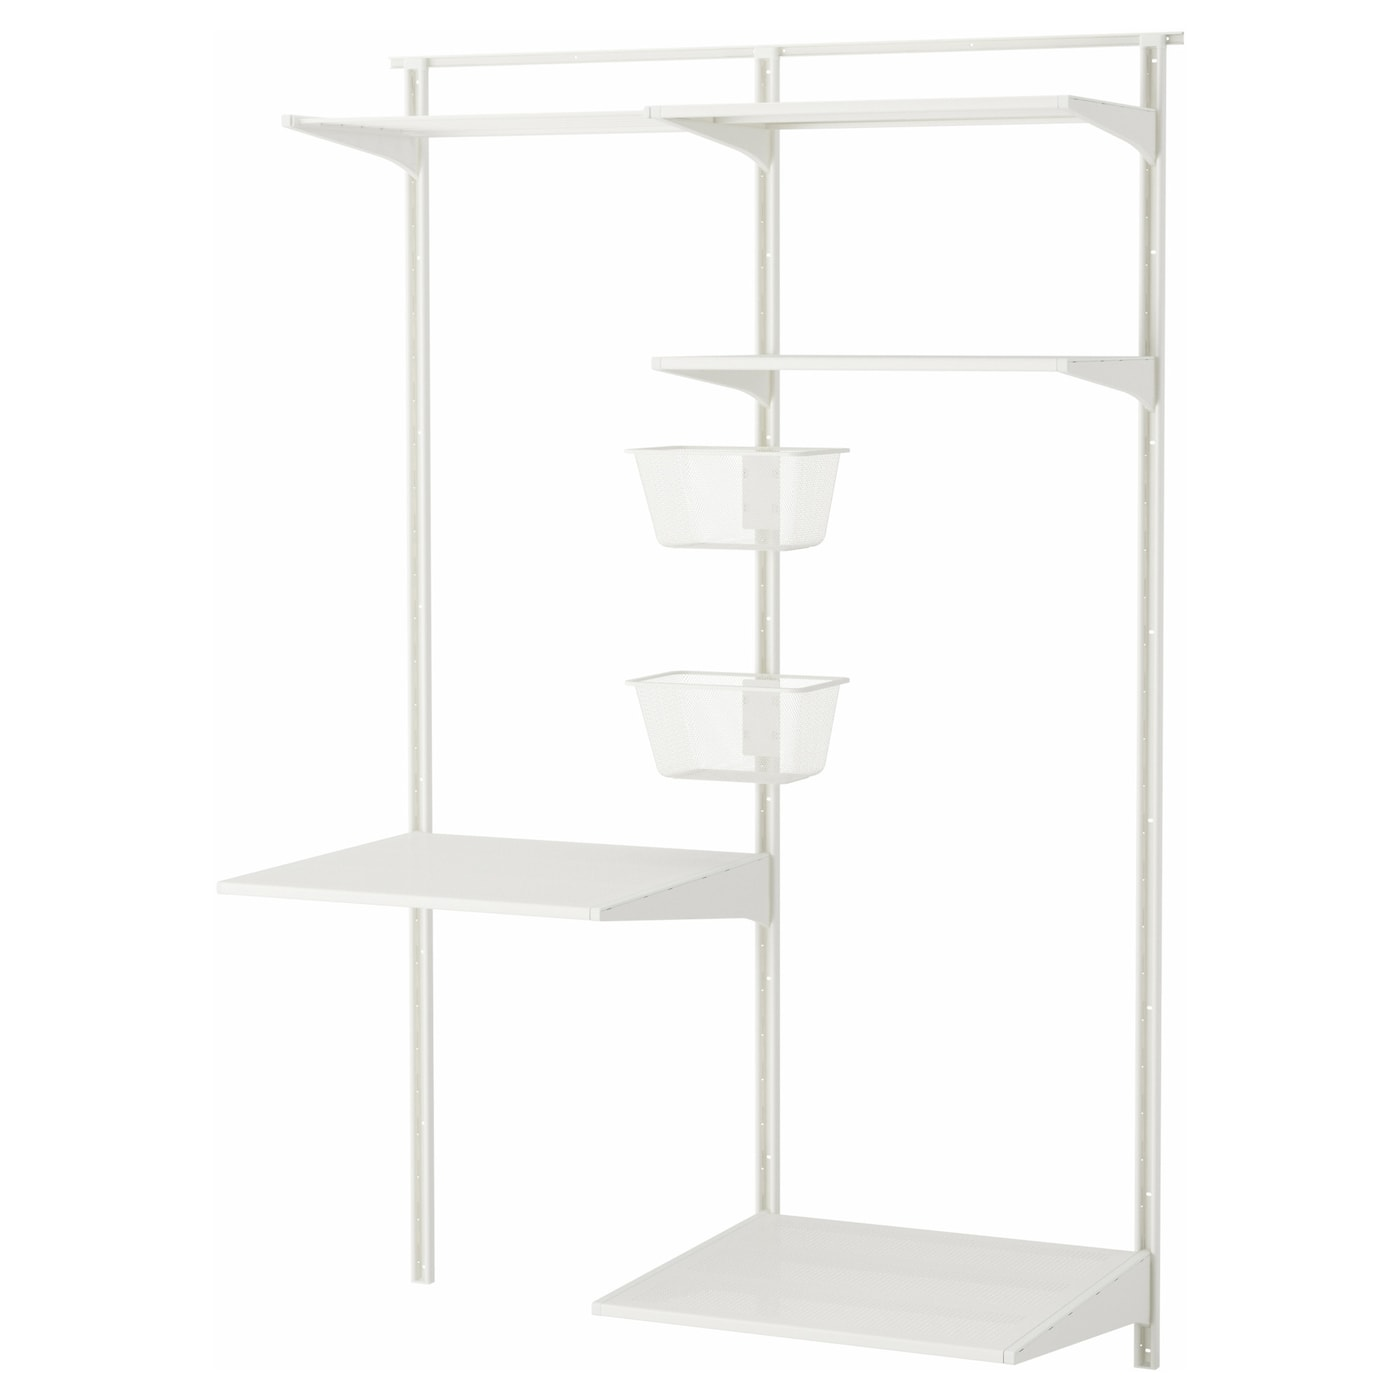 product stainless shelf hospital storage parry rack steel